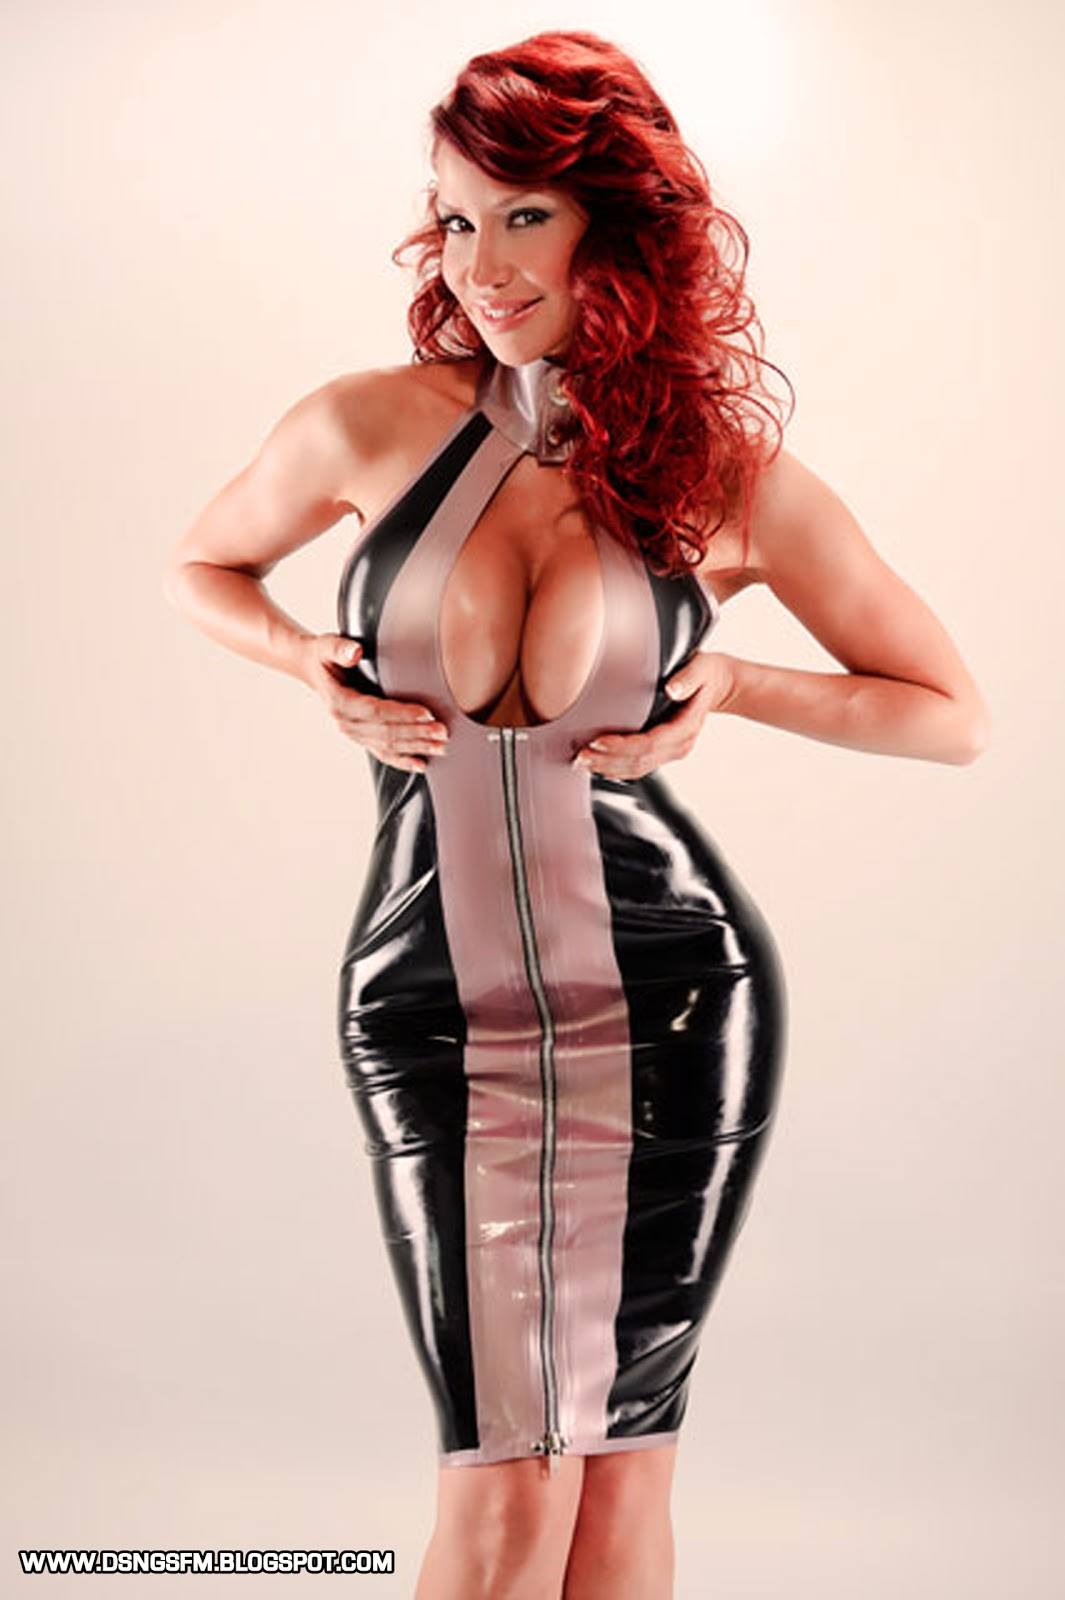 Big boobs red latex glovers 10